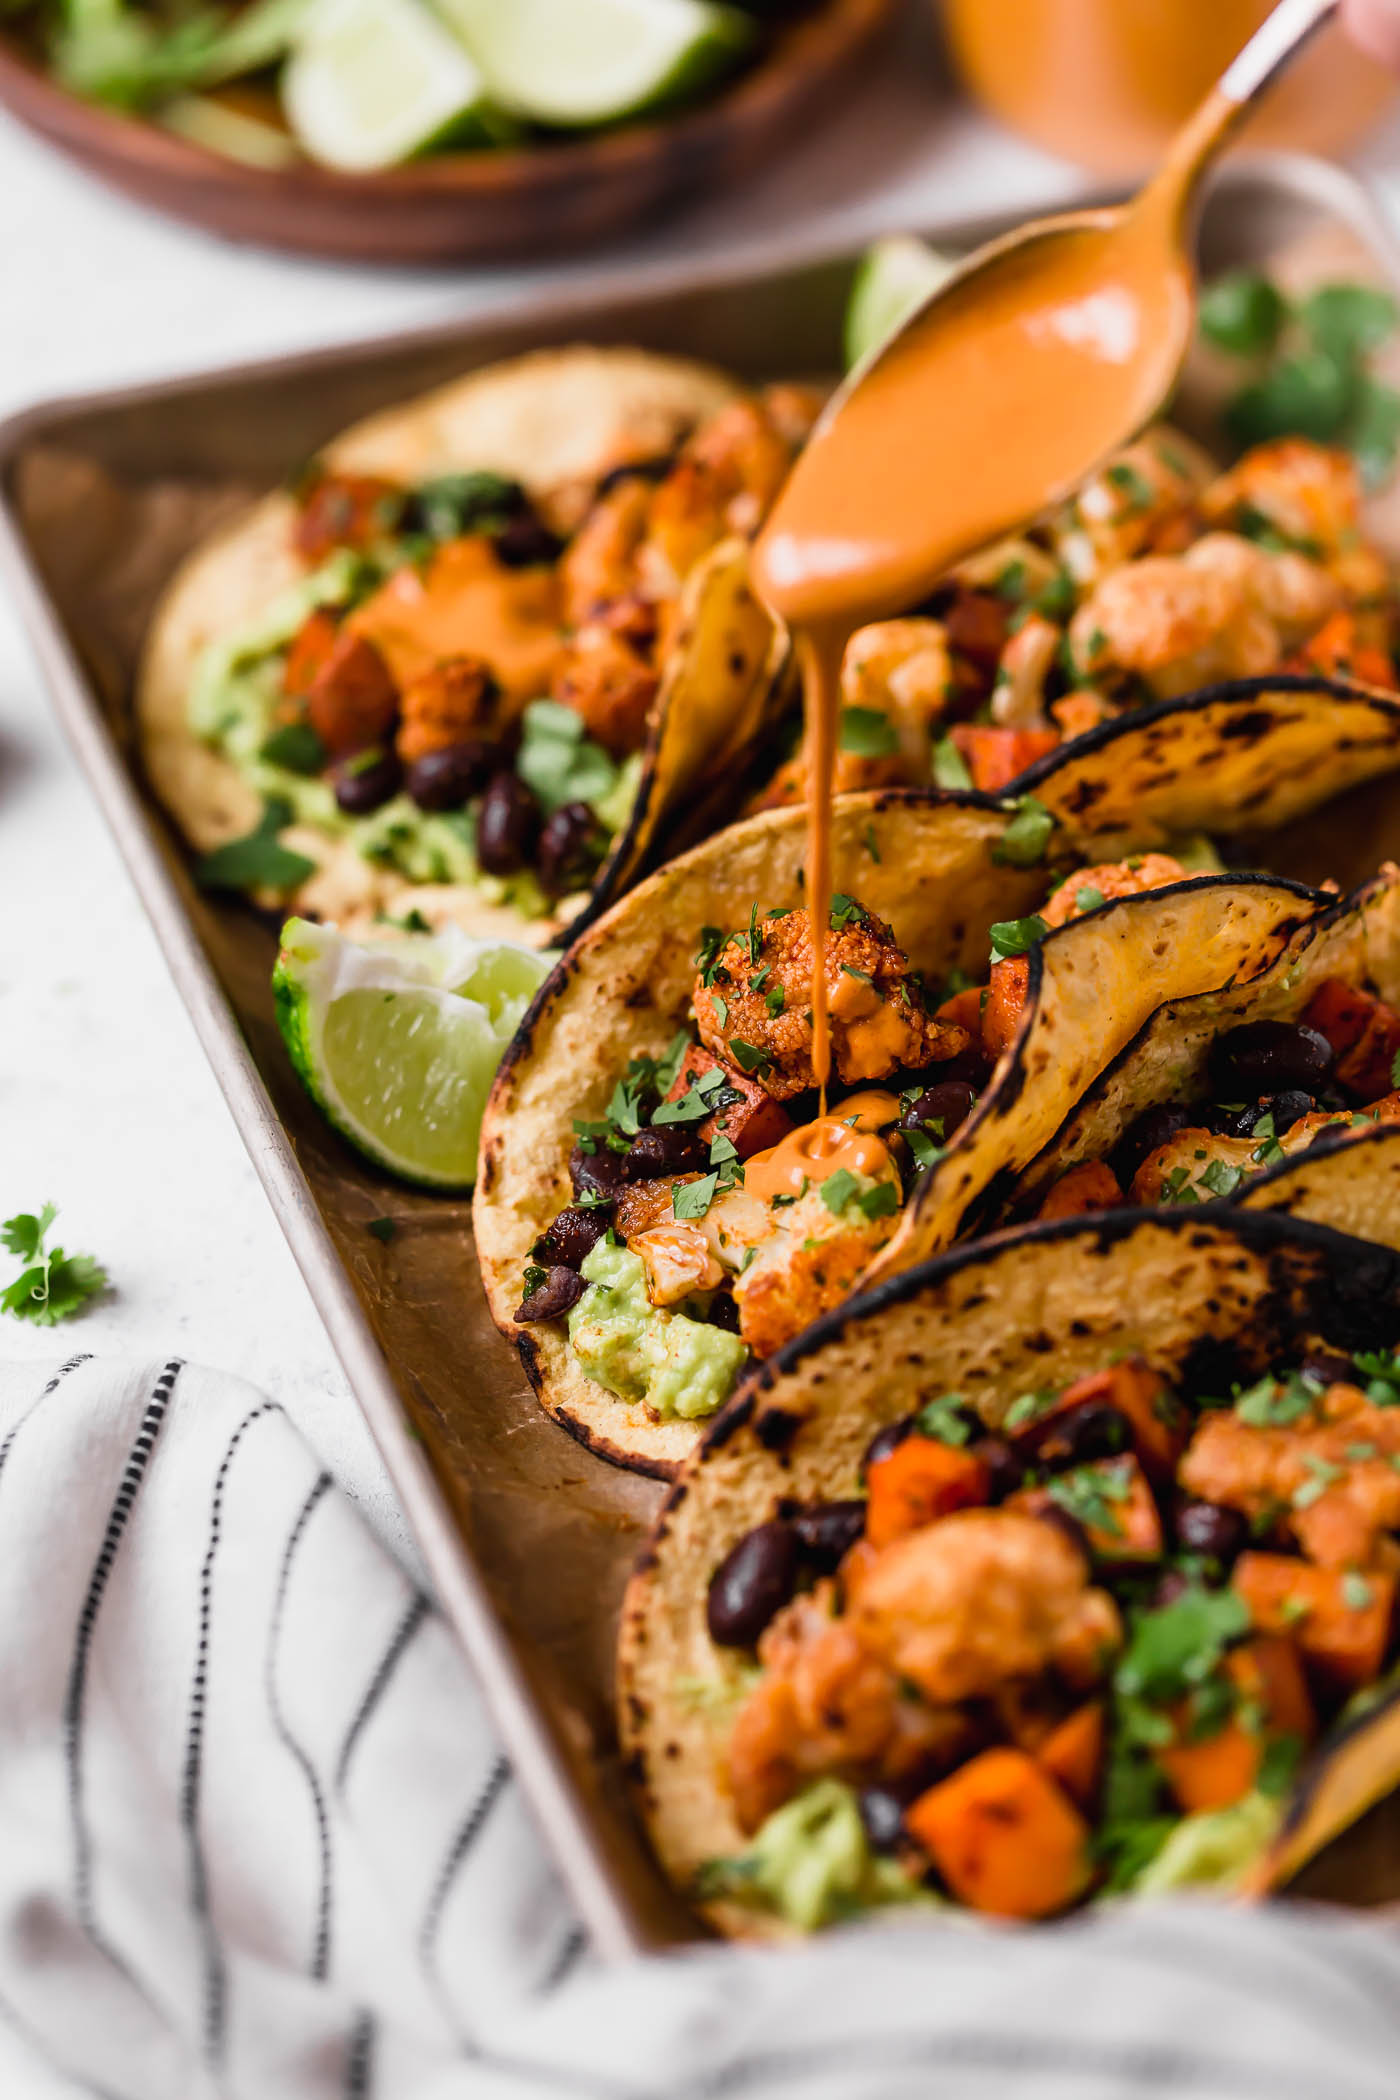 an easy vegetarian tacos recipe filled with easy roasted cauliflower, roasted sweet potatoes, black beans, topped with vegan chipotle lime cashew crema. these roasted sweet potato + cauliflower tacos are totally weeknight-friendly, made in 40 minutes or less, making this the perfect vegetarian taco recipe for taco tuesday! #tacos #cauliflowertacos #sweetpotatotacos #blackbeantacos #vegetariantacos #vegantacos #healthytacosrecipe #easytacosrecipe #easyvegetarianrecipe #easyveganrecipe #dairyfree